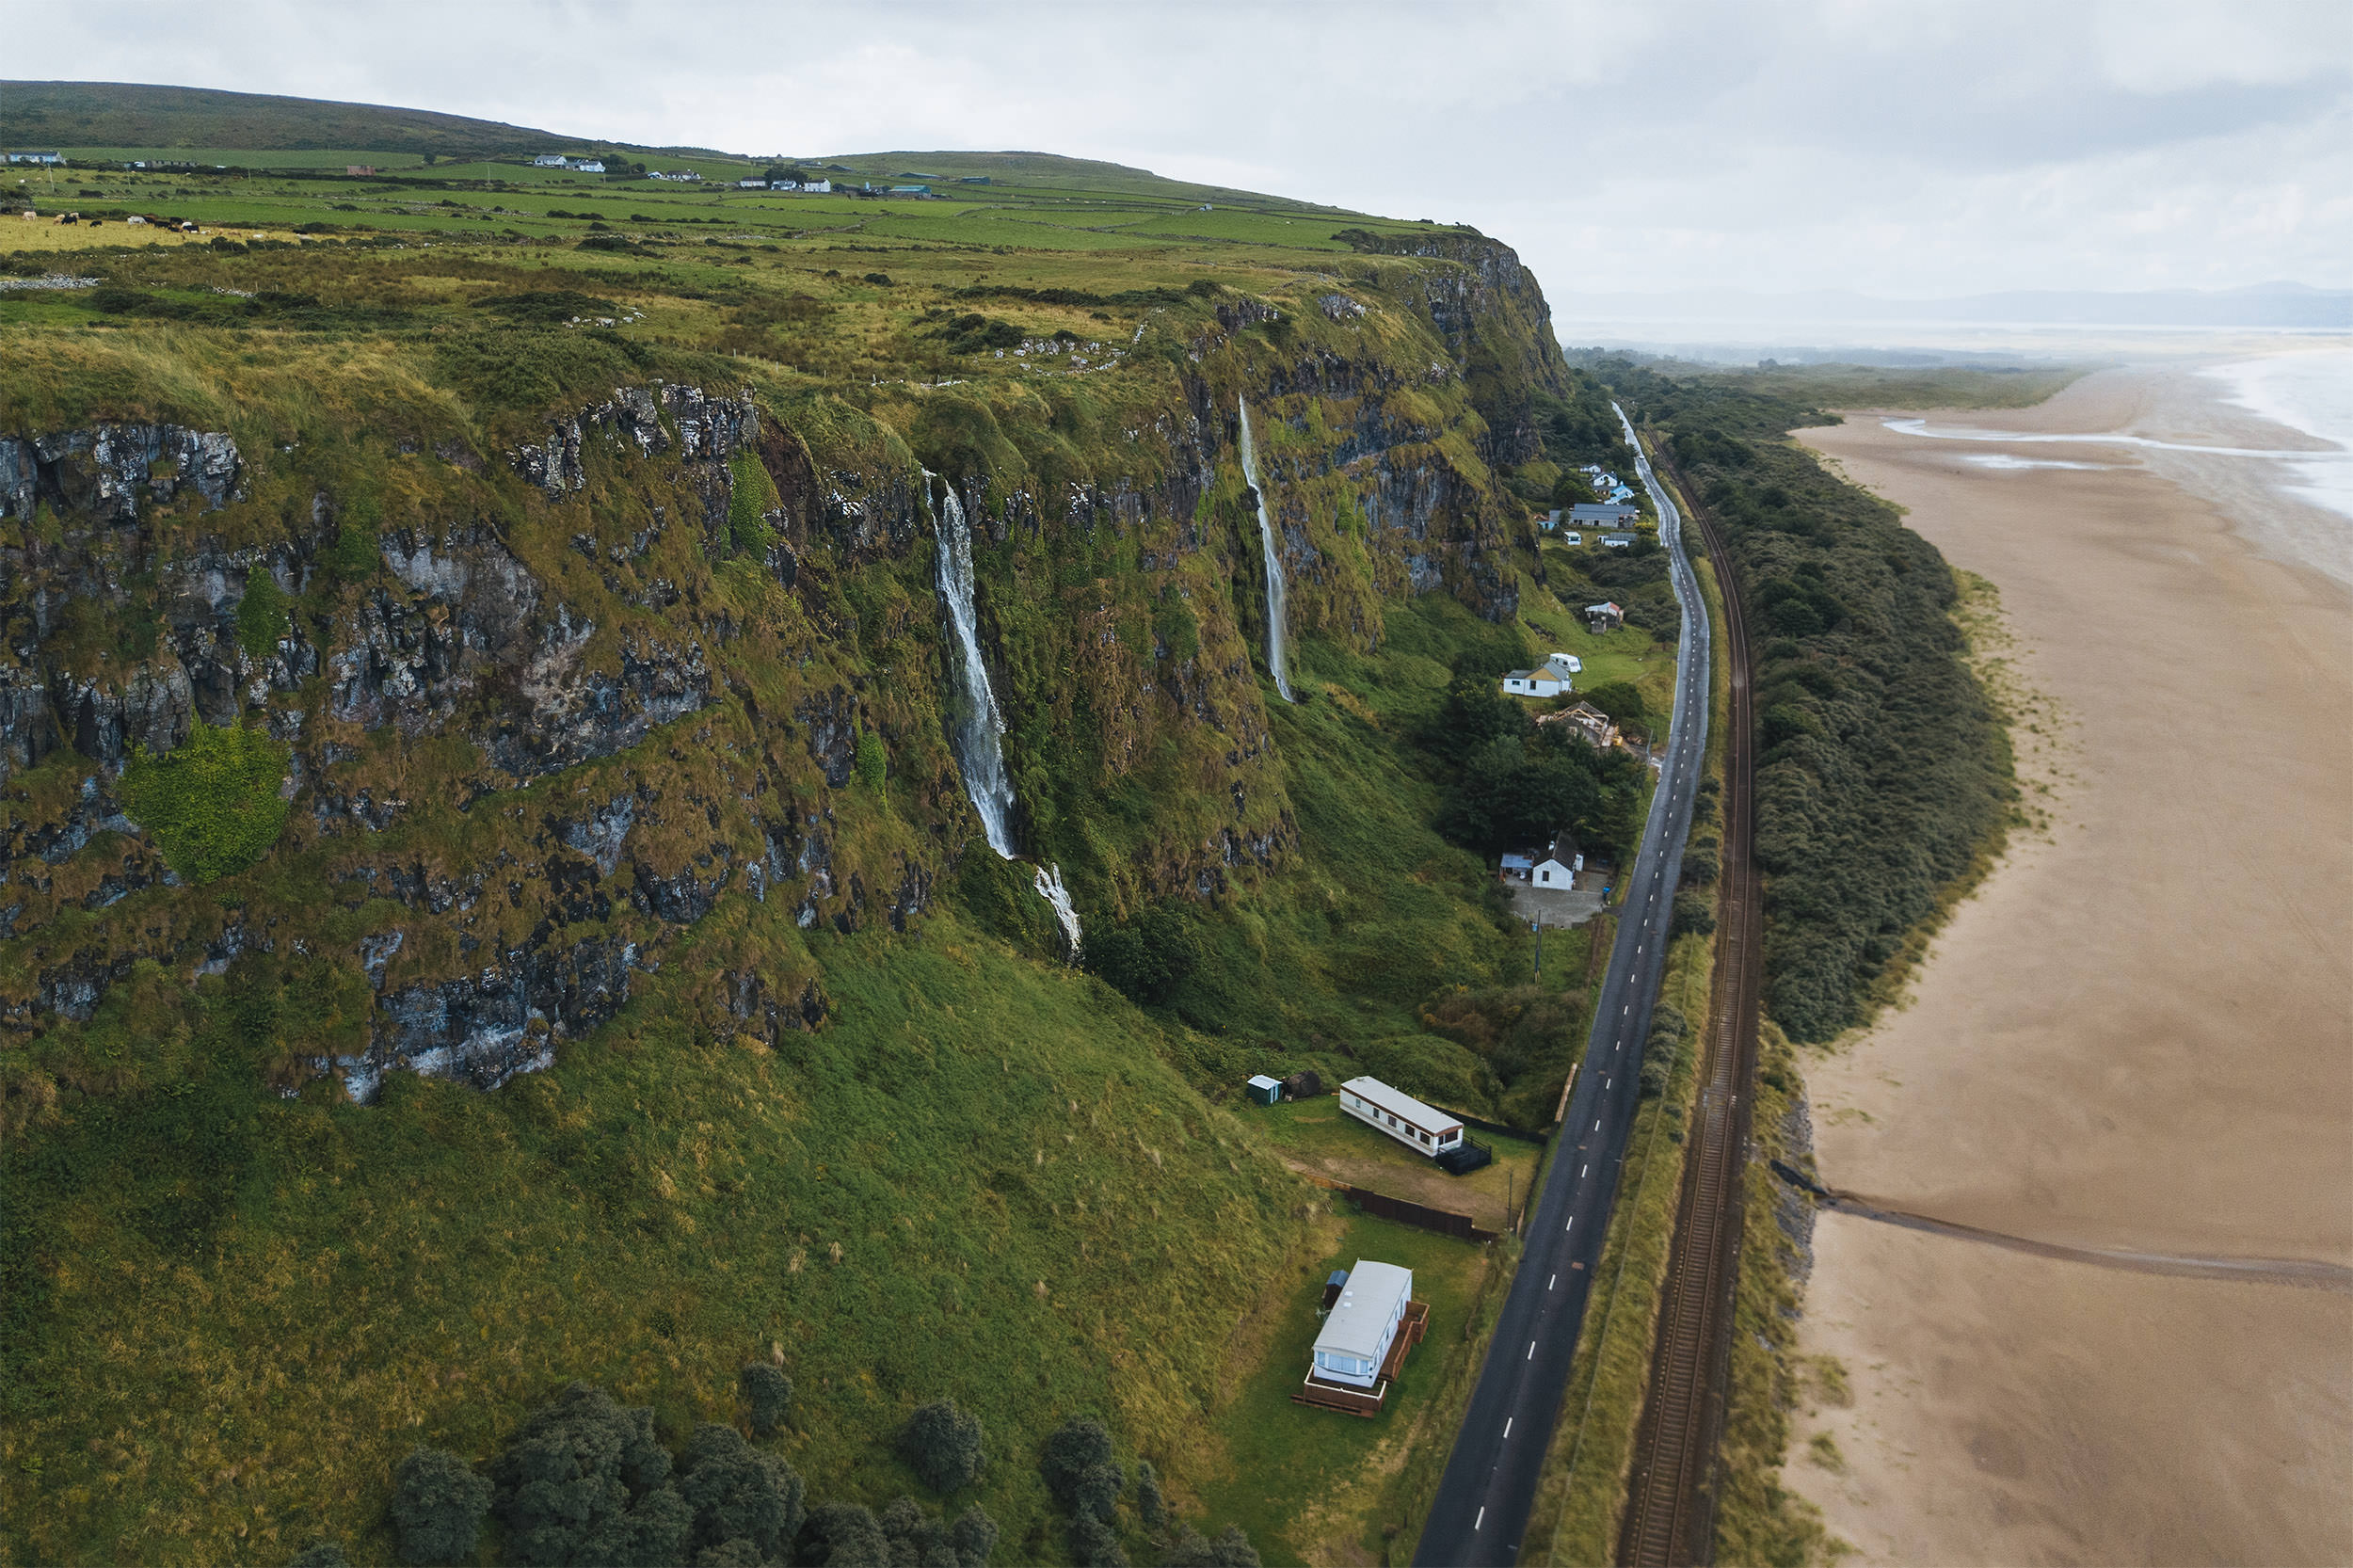 02-travel-northern-ireland-waterfall-county-antrim-benone-beach-drone.jpg